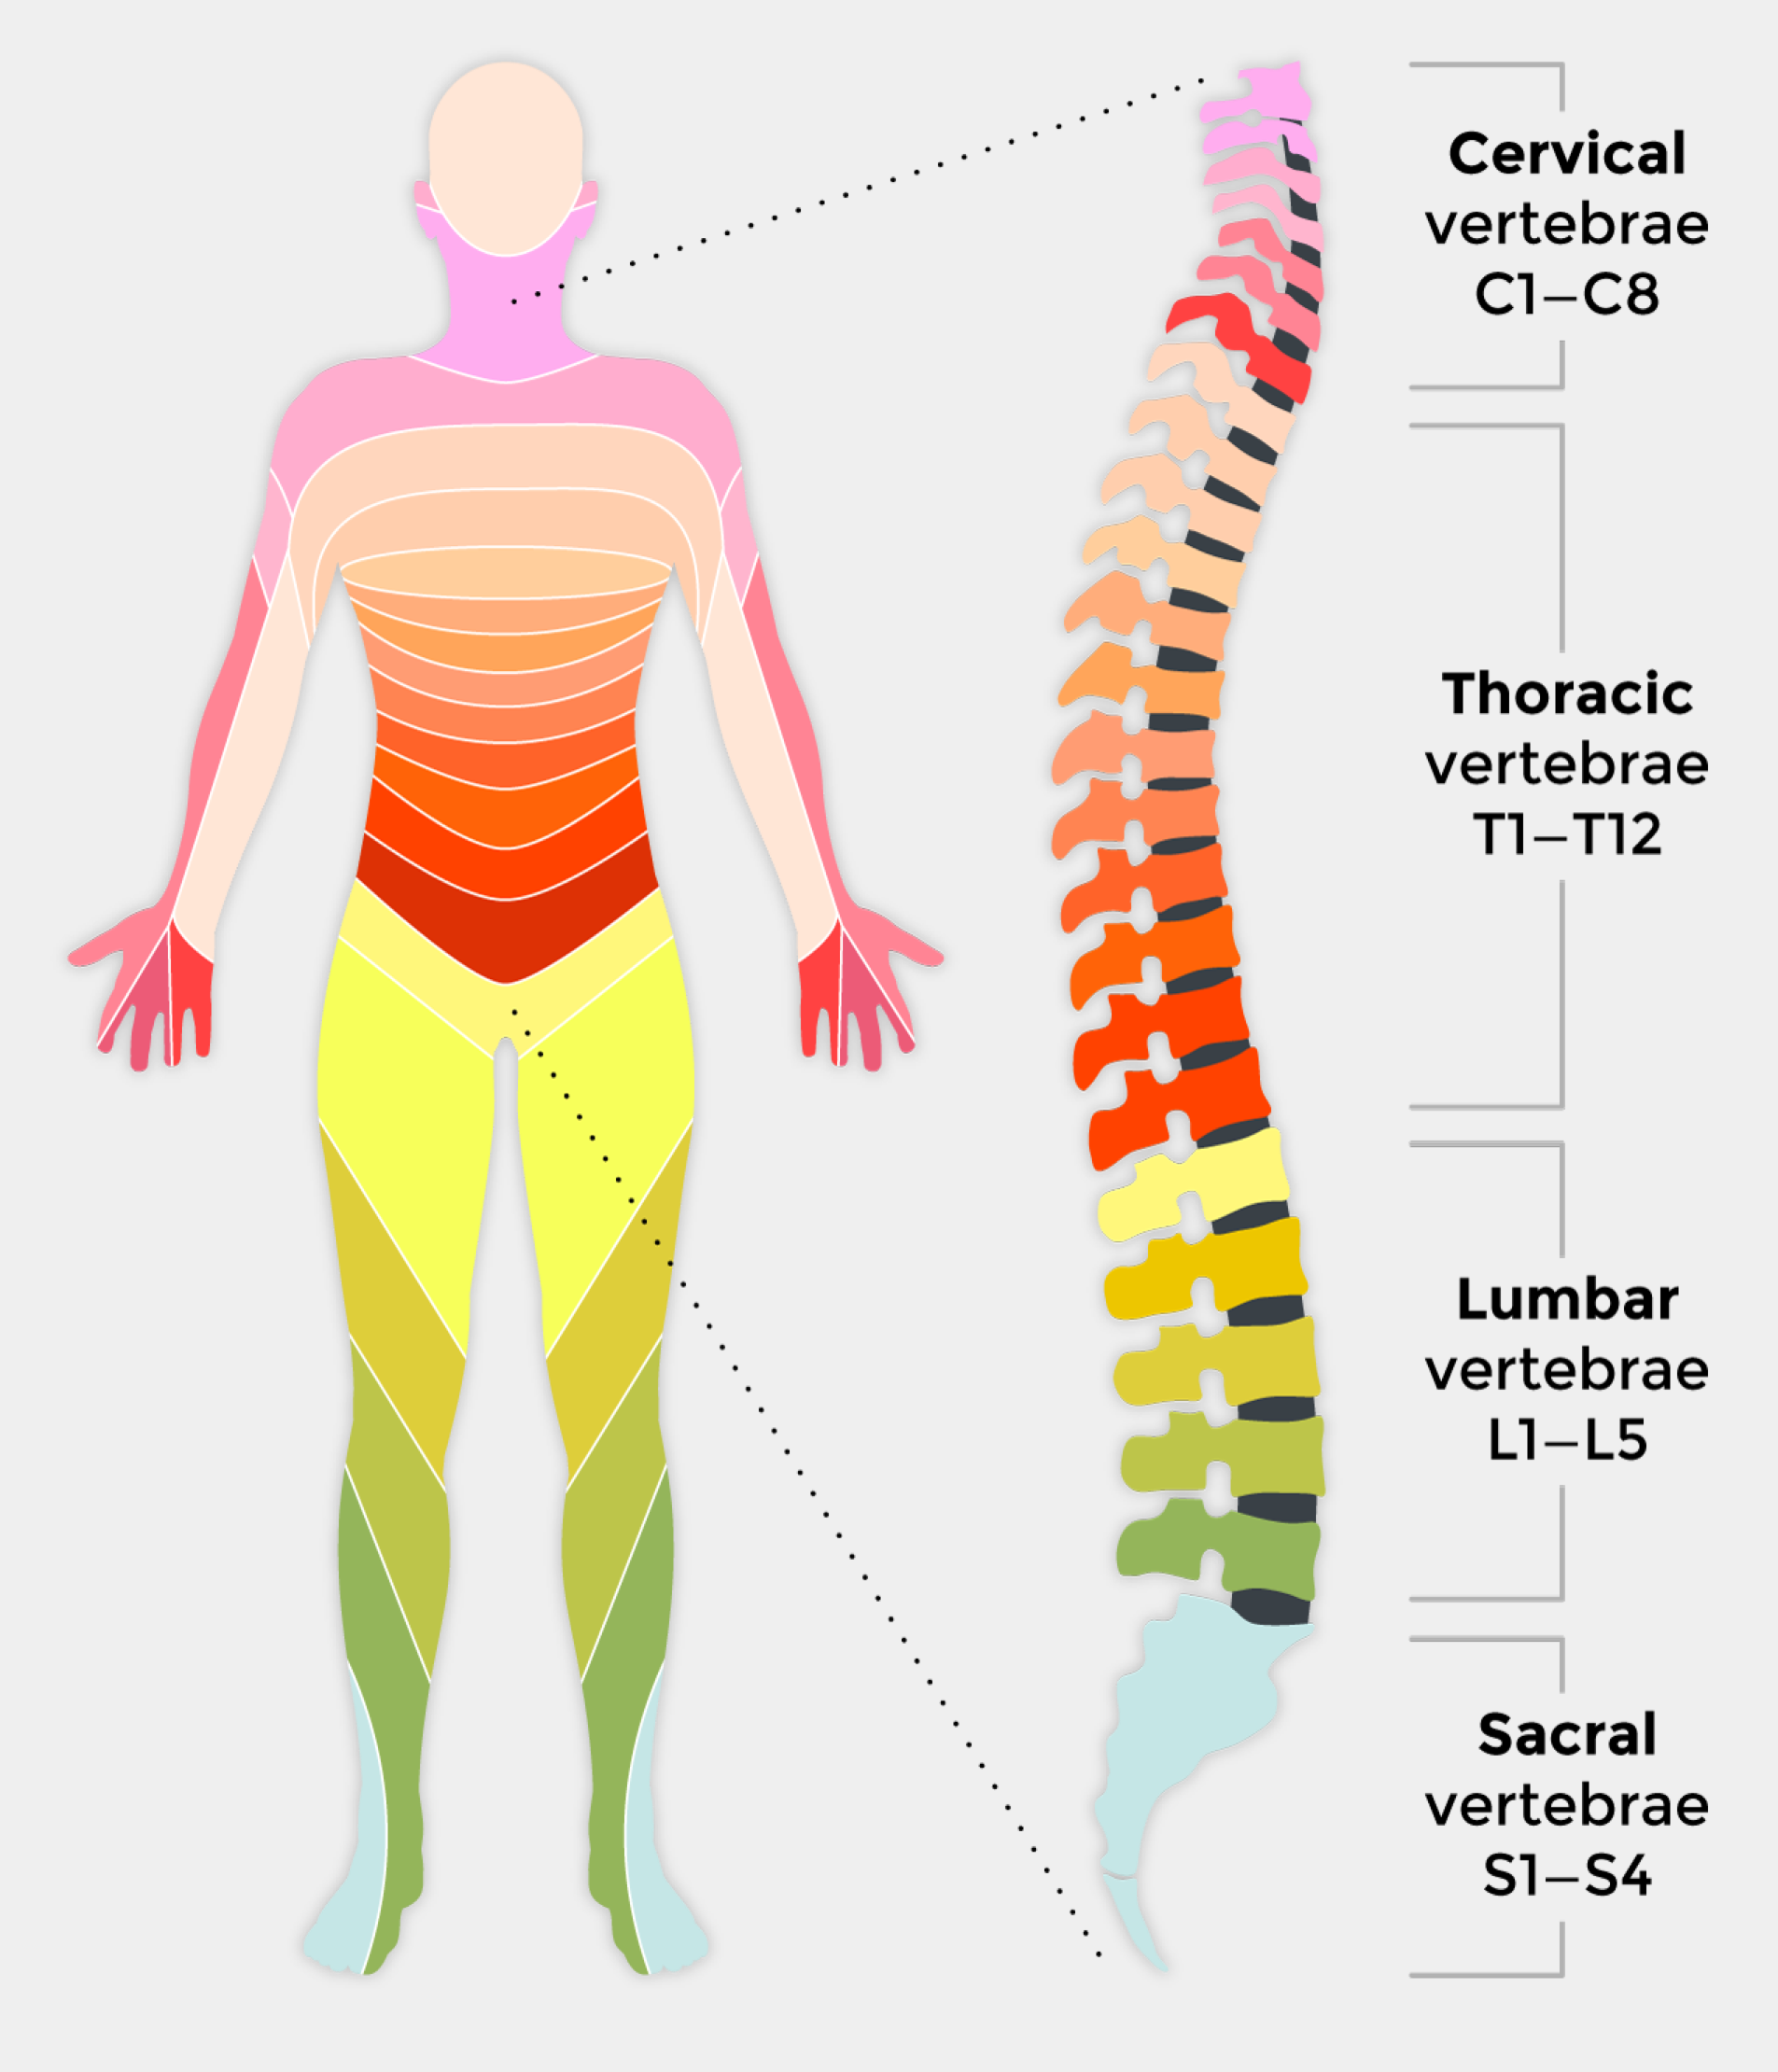 Spinal Cord Diagram showing all levels of injury